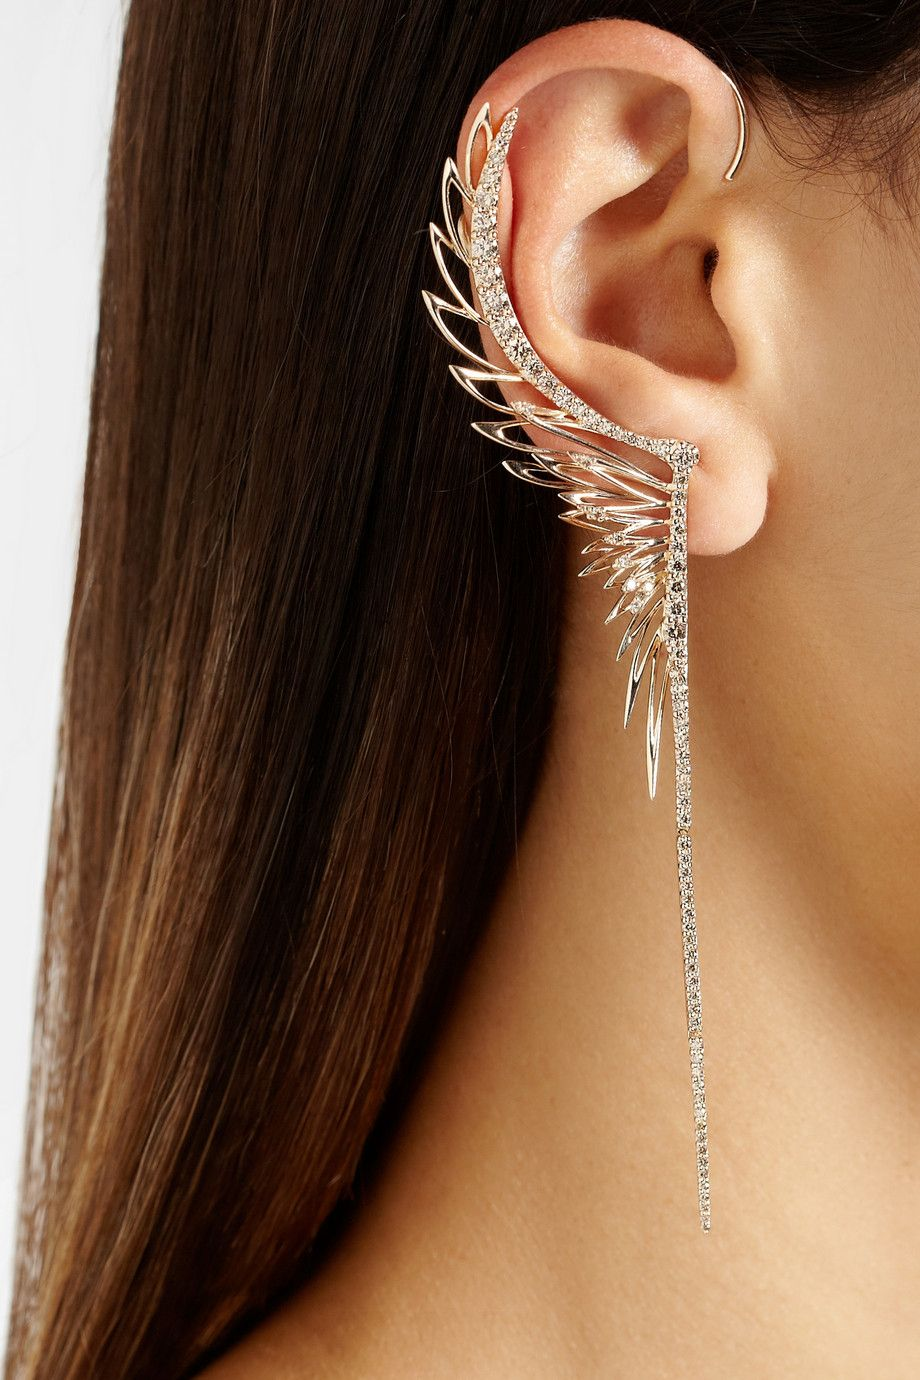 518dda939d912 Winged ear cuff. I am not actually a fan of the long dangly earrings, but I  like this one.